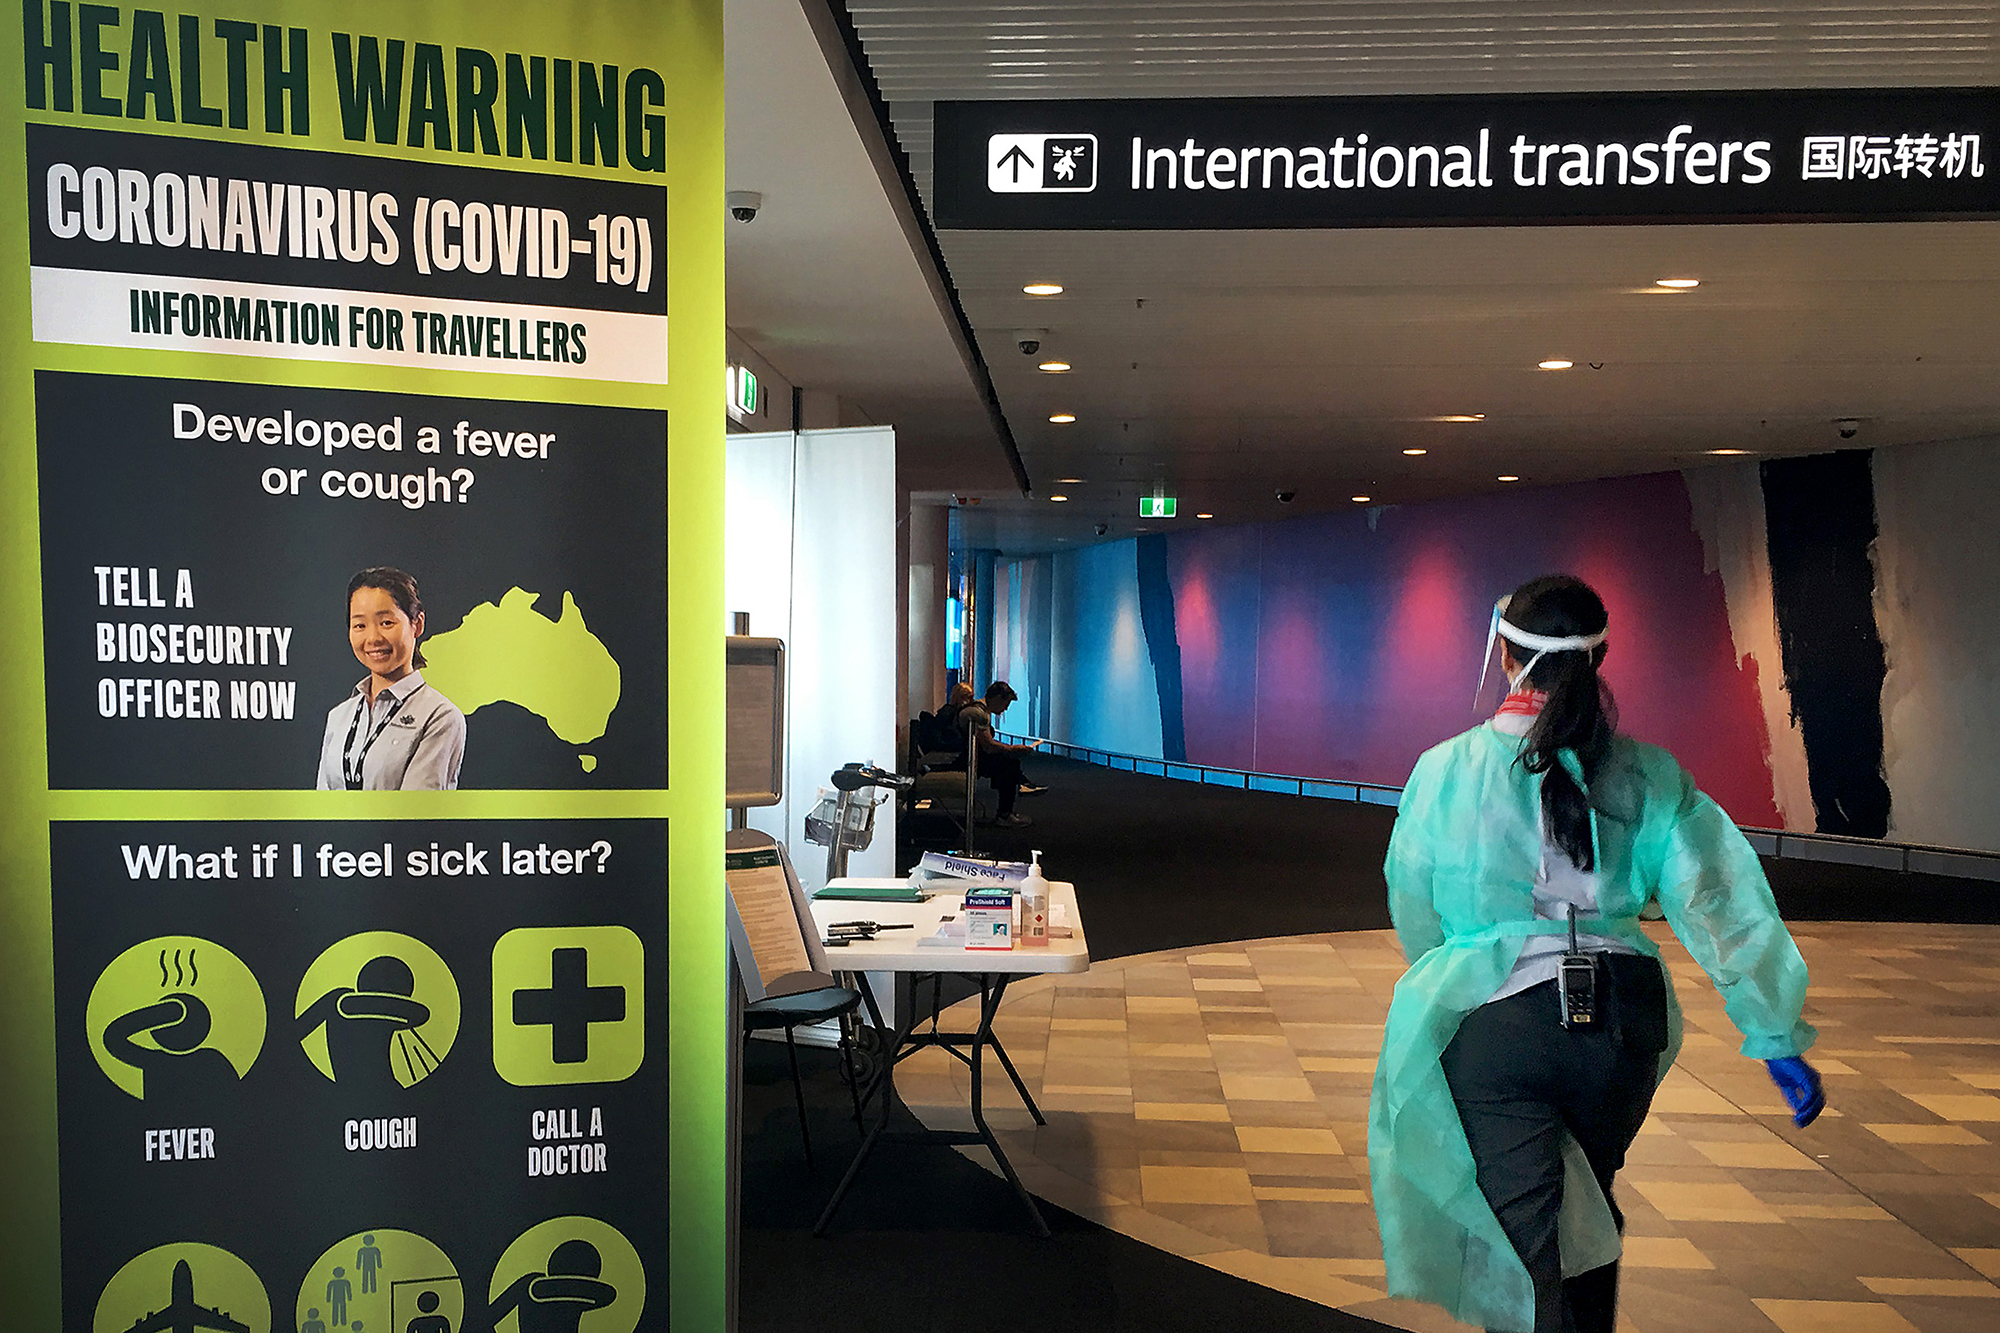 A staff member in protective medical clothing moves through the arrivals area at Brisbane International Airport on March 16 in Brisbane, Australia.